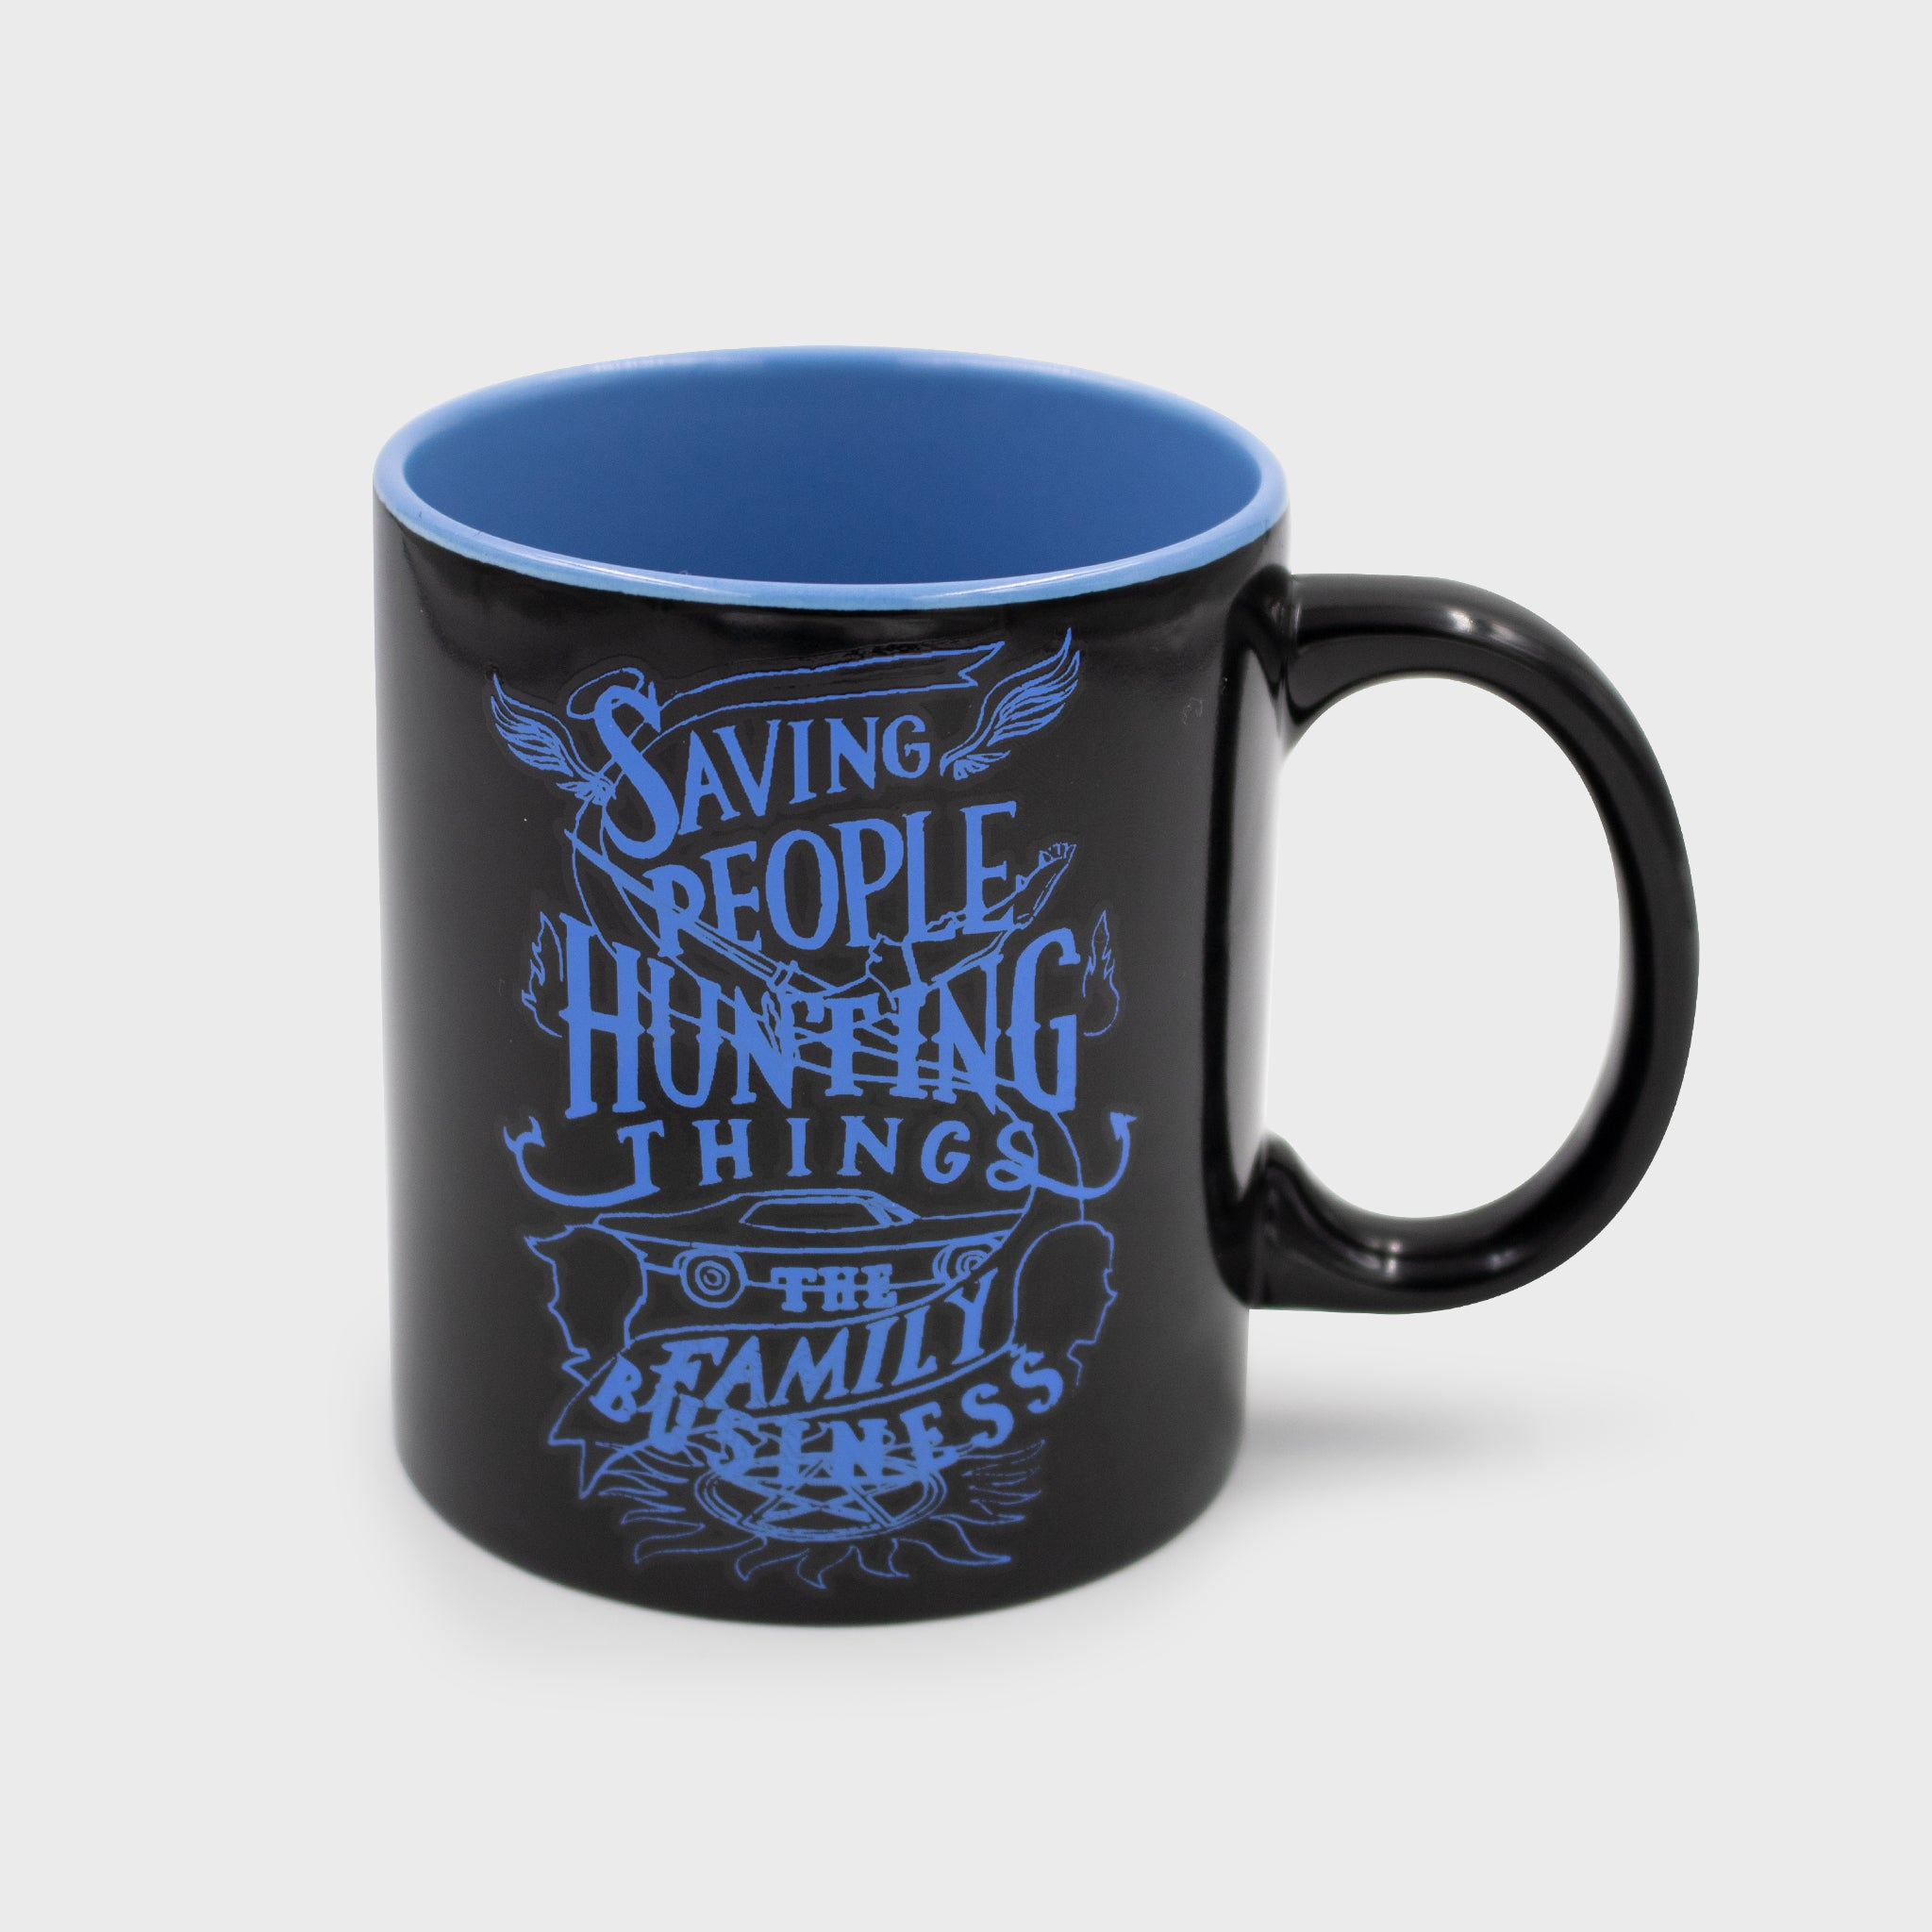 supernatural box dean winchester sam winchester castiel collectible exclusive fans spn spnfamily mug kictchenware